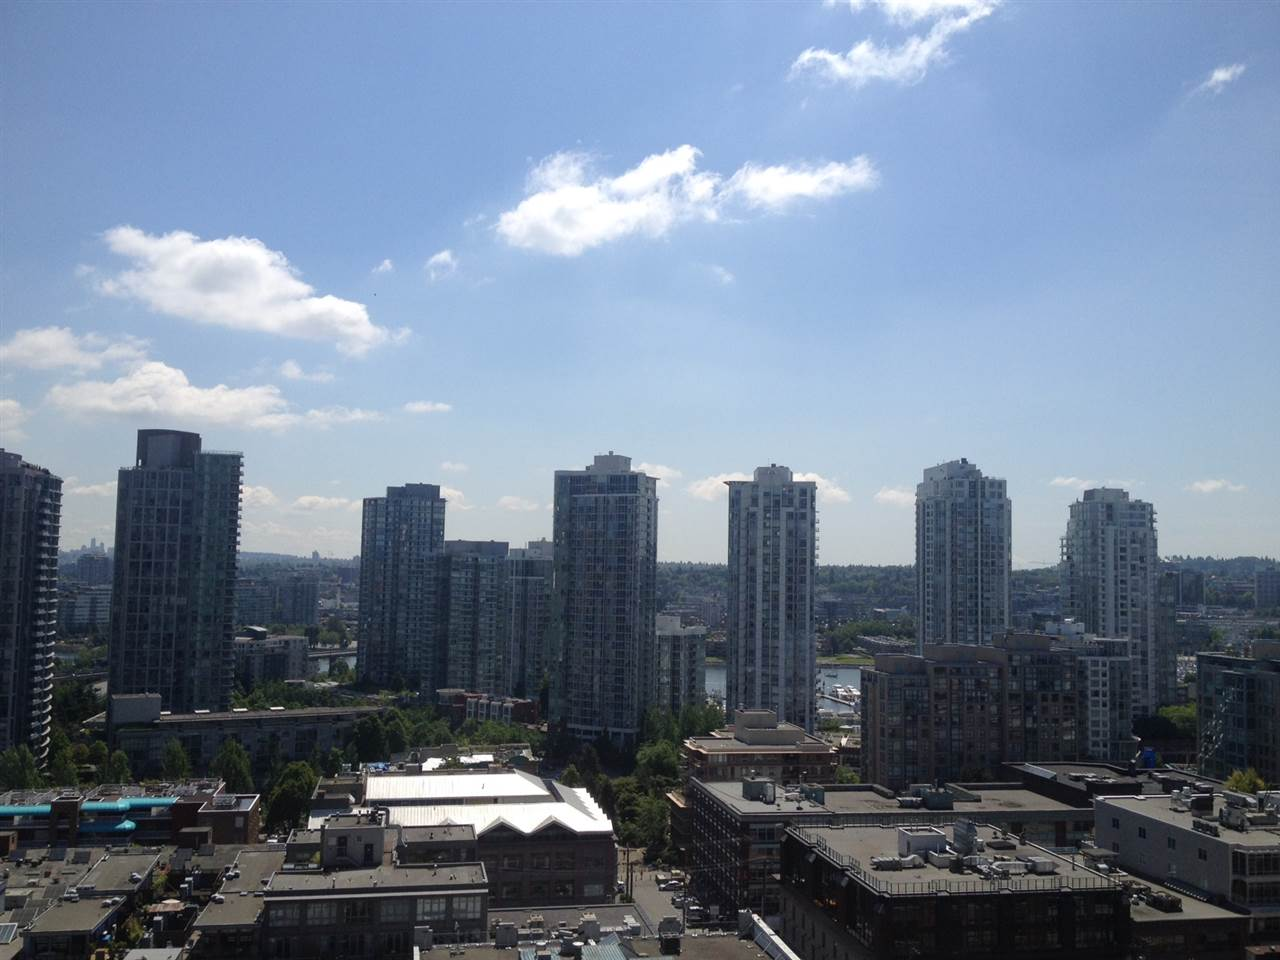 Photo 7: 1808 1088 RICHARDS Street in Vancouver: Yaletown Condo for sale (Vancouver West)  : MLS® # R2071276